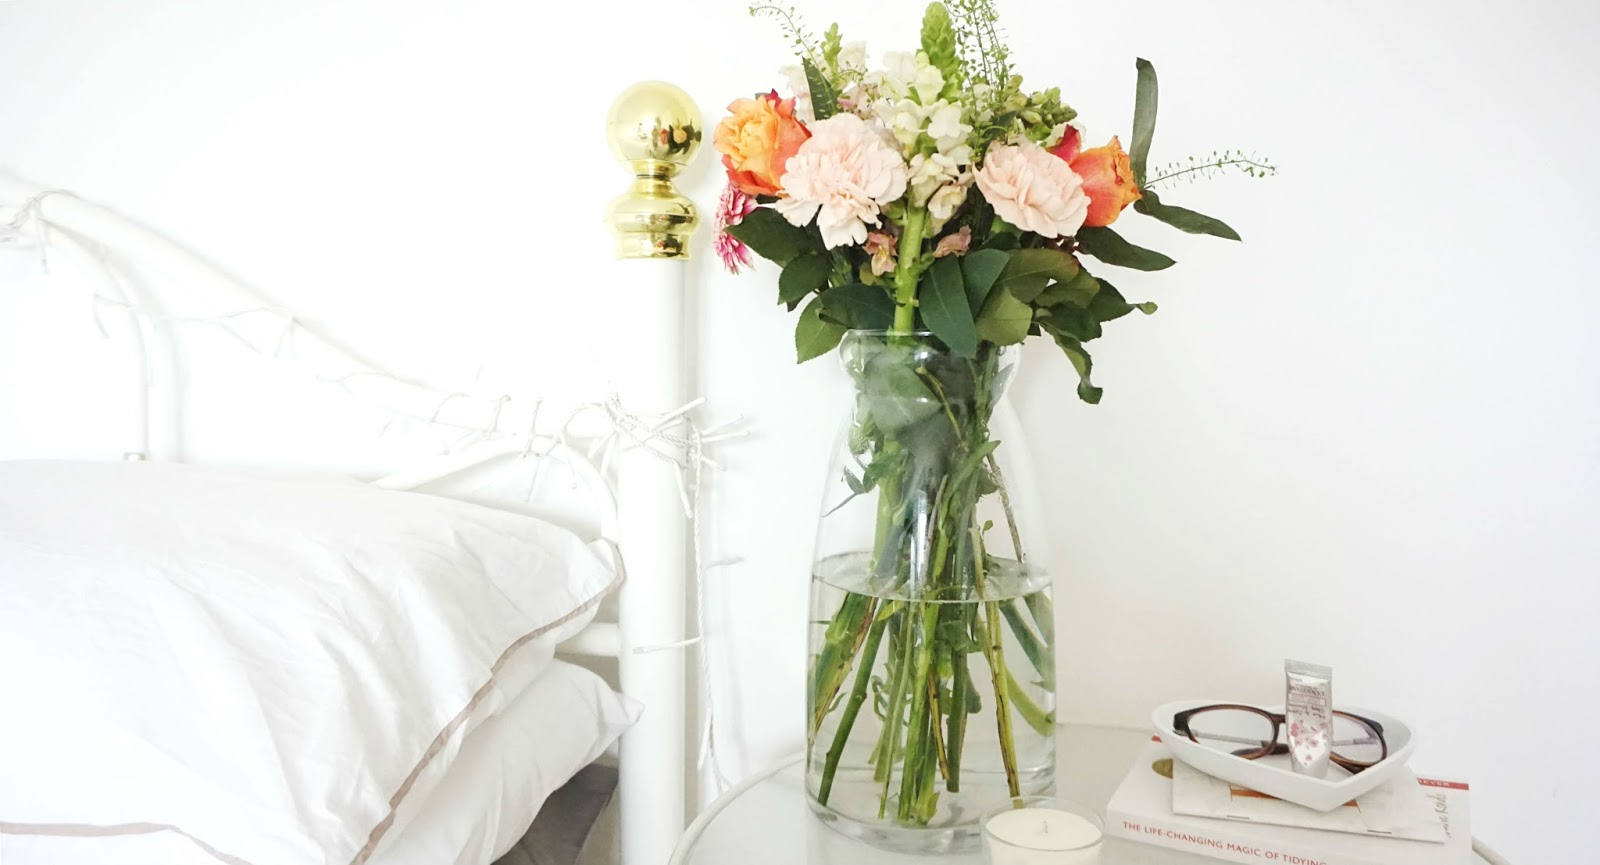 spring bedroom interior homeware fresh flowers white bedding bedside table